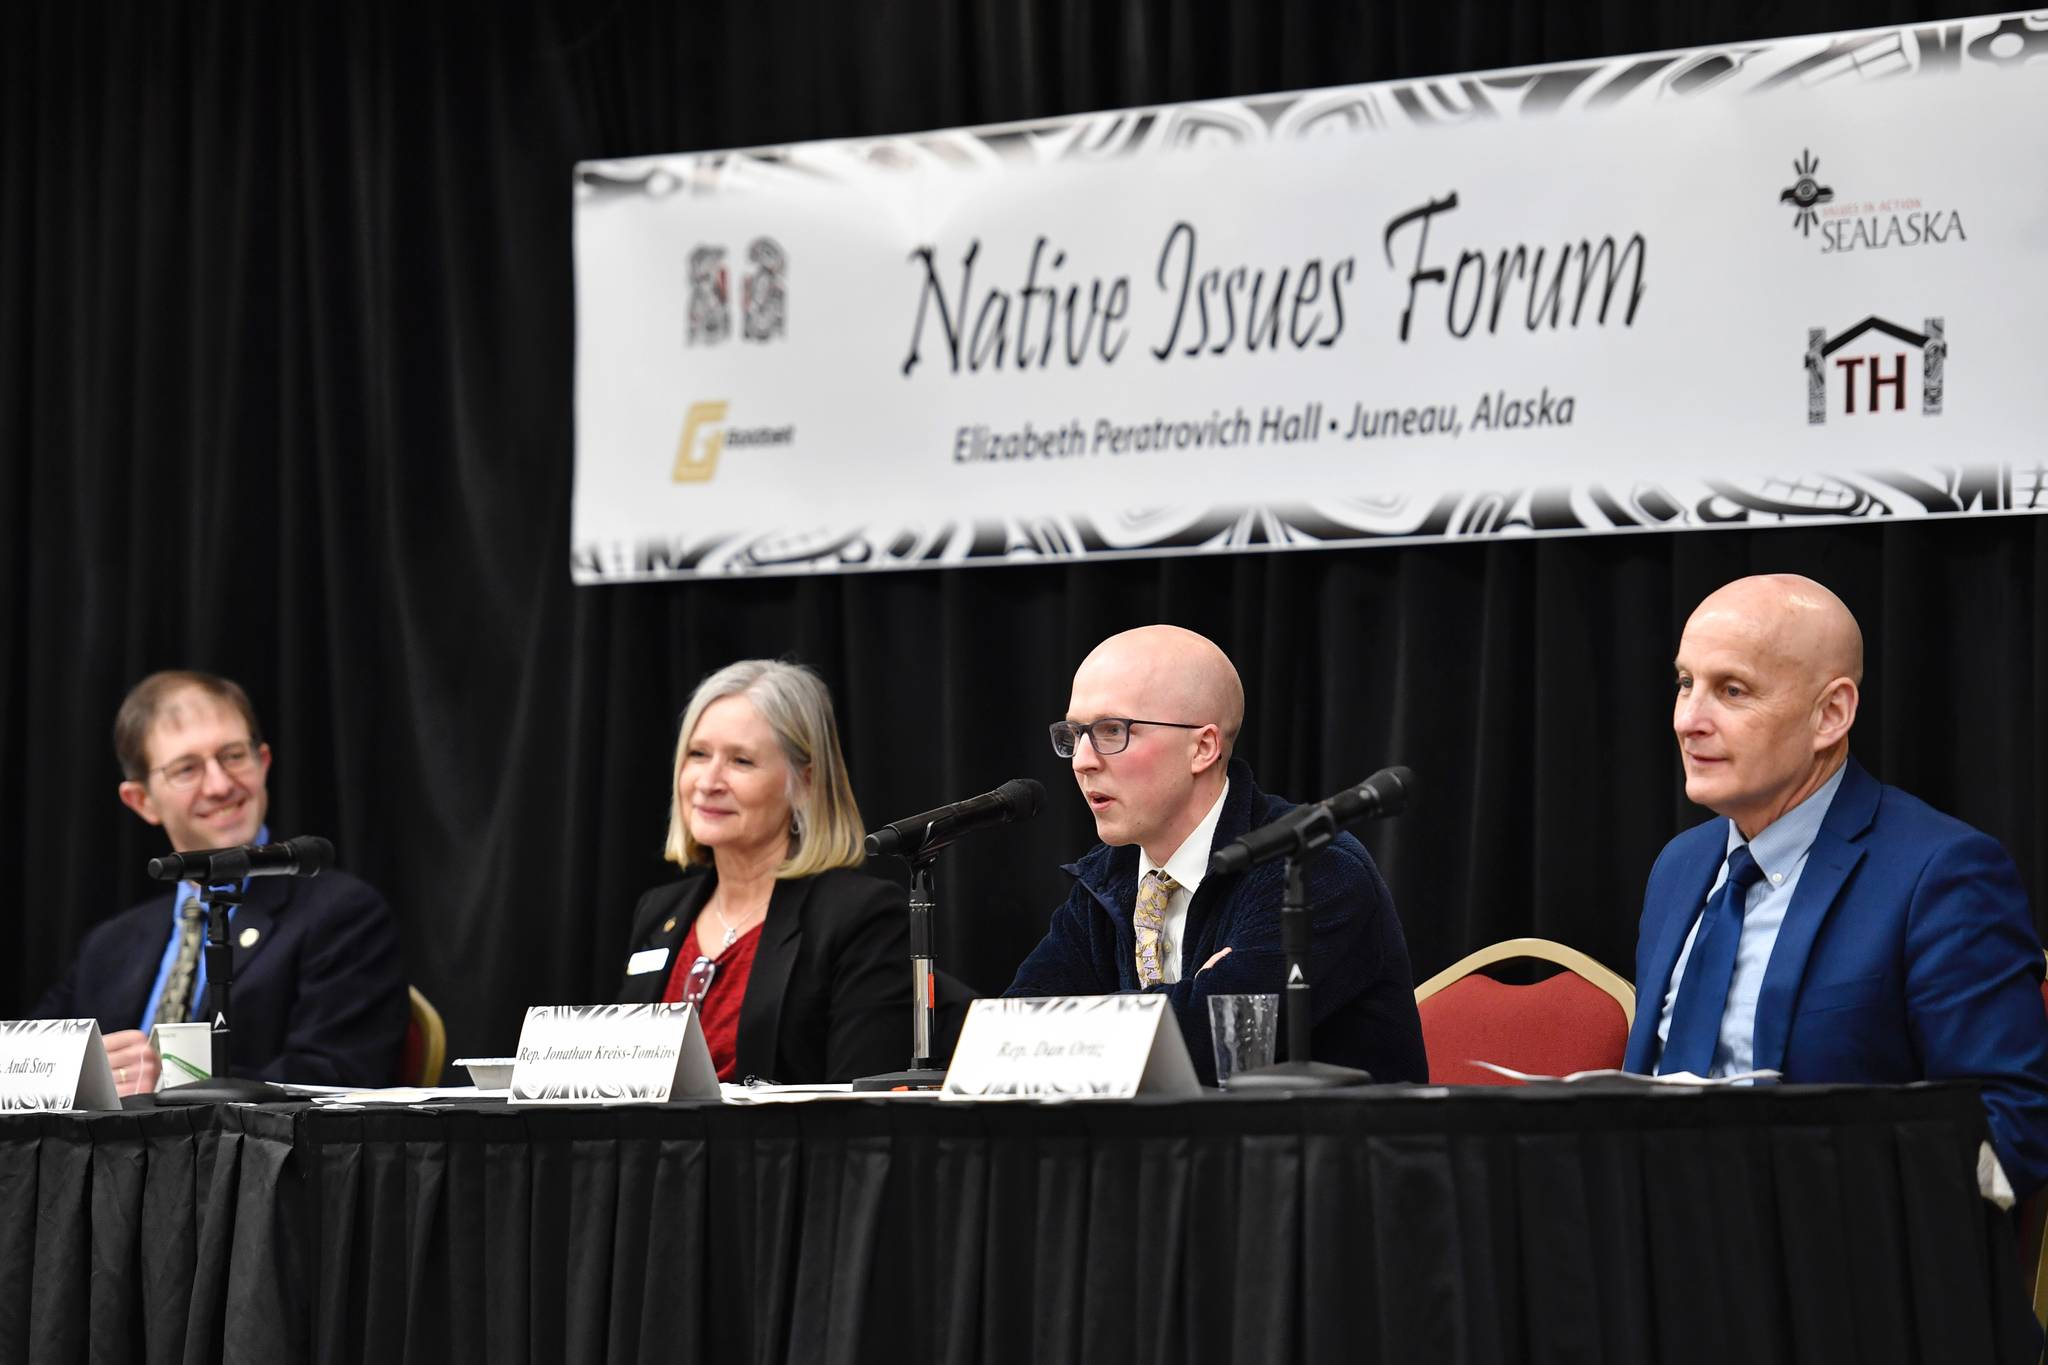 Sen. Jesse Kiehl, D-Juneau, left, Rep. Andi Story, D-Juneau, Rep. Jonathan Kreiss-Tompkins, D-Sitka, and Rep. Dan Ortiz, I-Ketchikan, right, speak at the Native Issues Forum in the Elizabeth Peratrovich Hall on Wednesday, March 13, 2019. (Michael Penn | Juneau Empire)